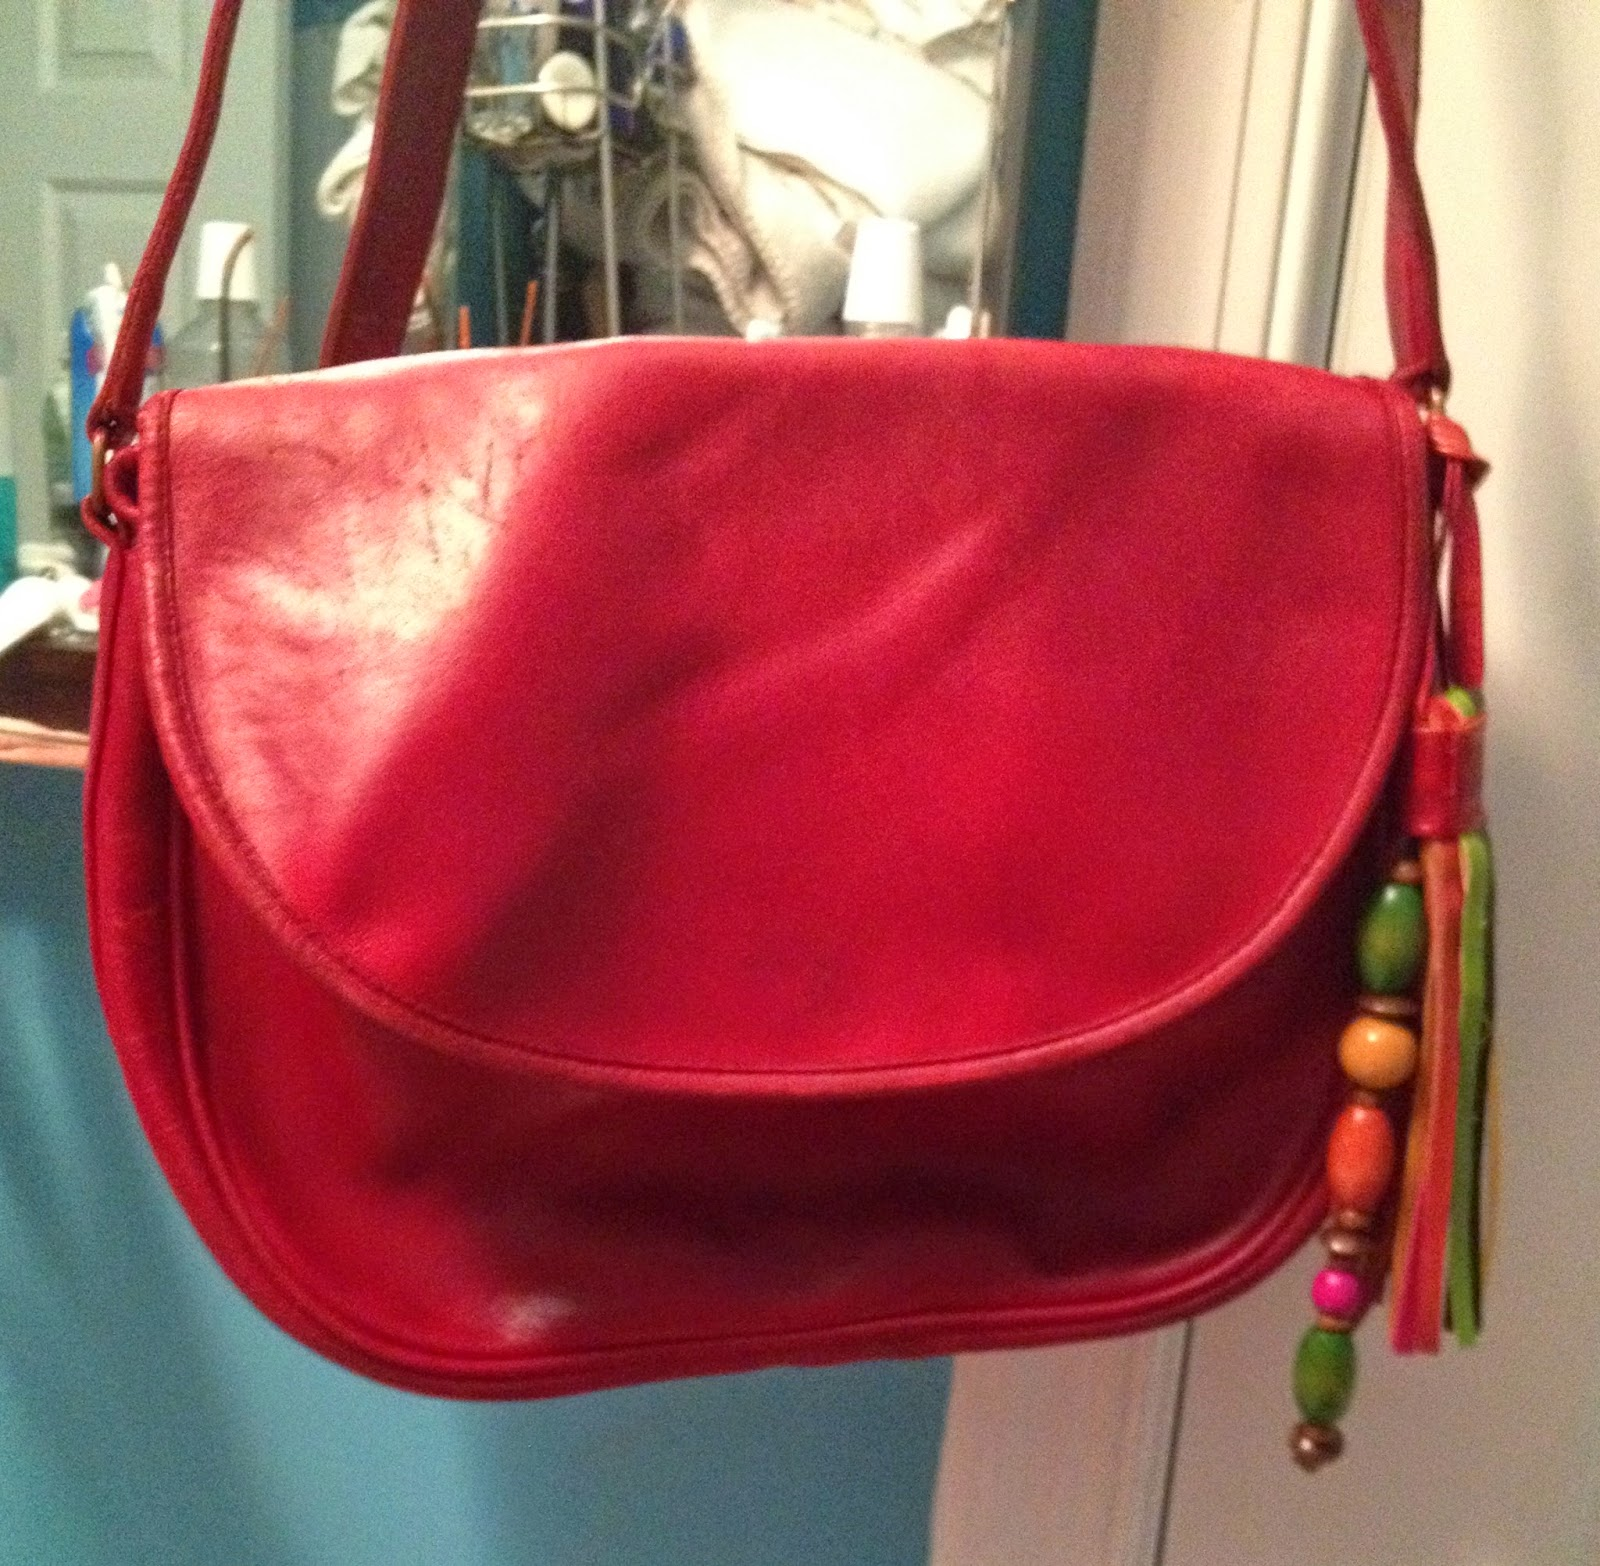 Vintage Red Coach Crossbody Bag Rescued From Goodwill And